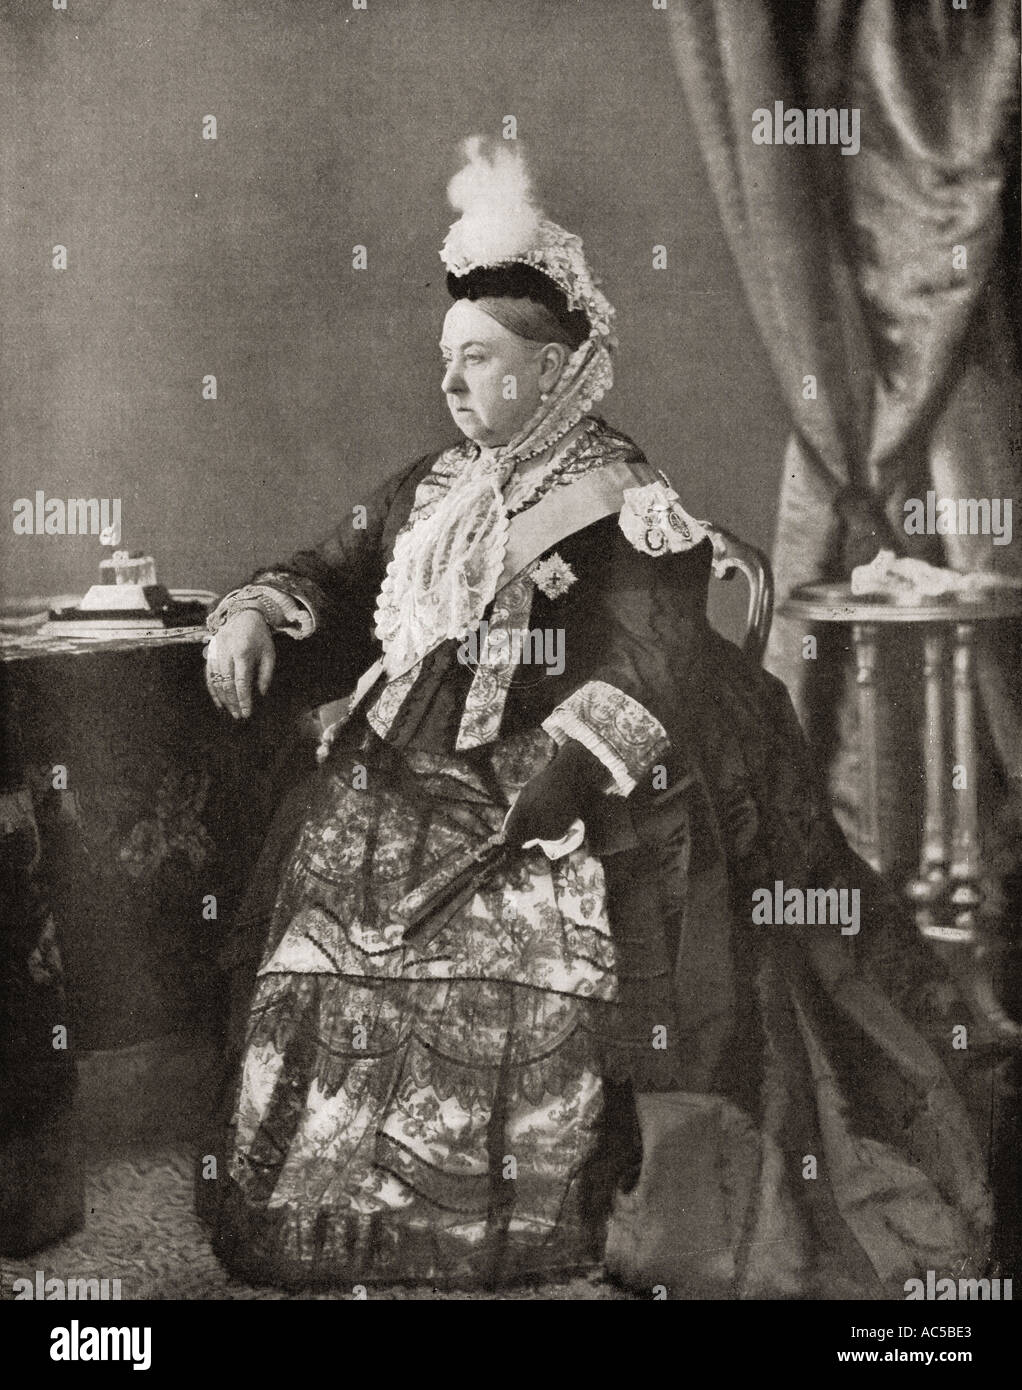 Queen Victoria, 1819 - 1901, seen here in the dress worn by her at the jubilee service, 1887. - Stock Image